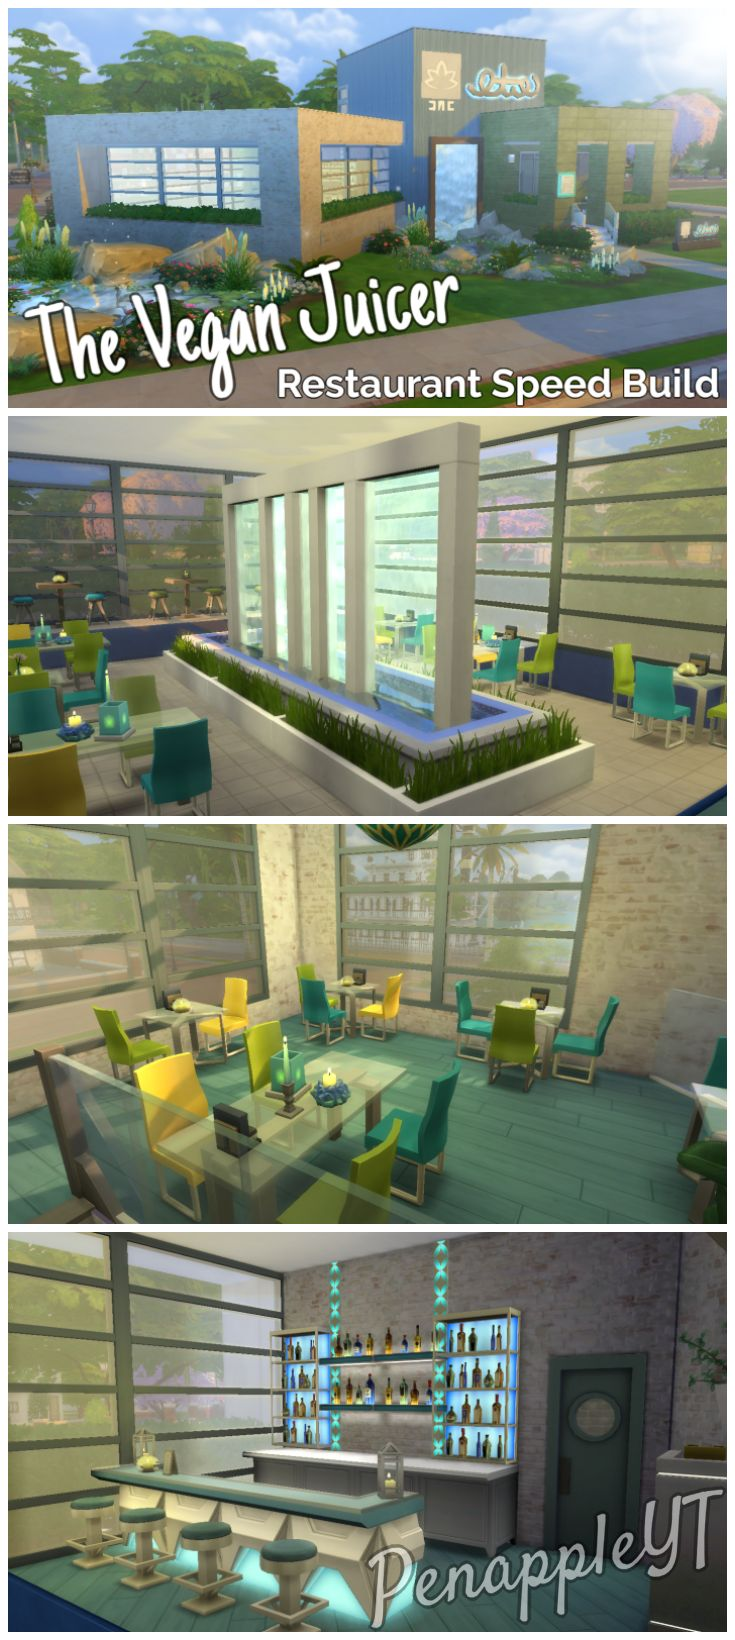 Urban treehouse sims 4 houses - A Modern Restaurant Designed To Look Very Green And Eco Friendly I Imagine The The Simssims 4outdoor